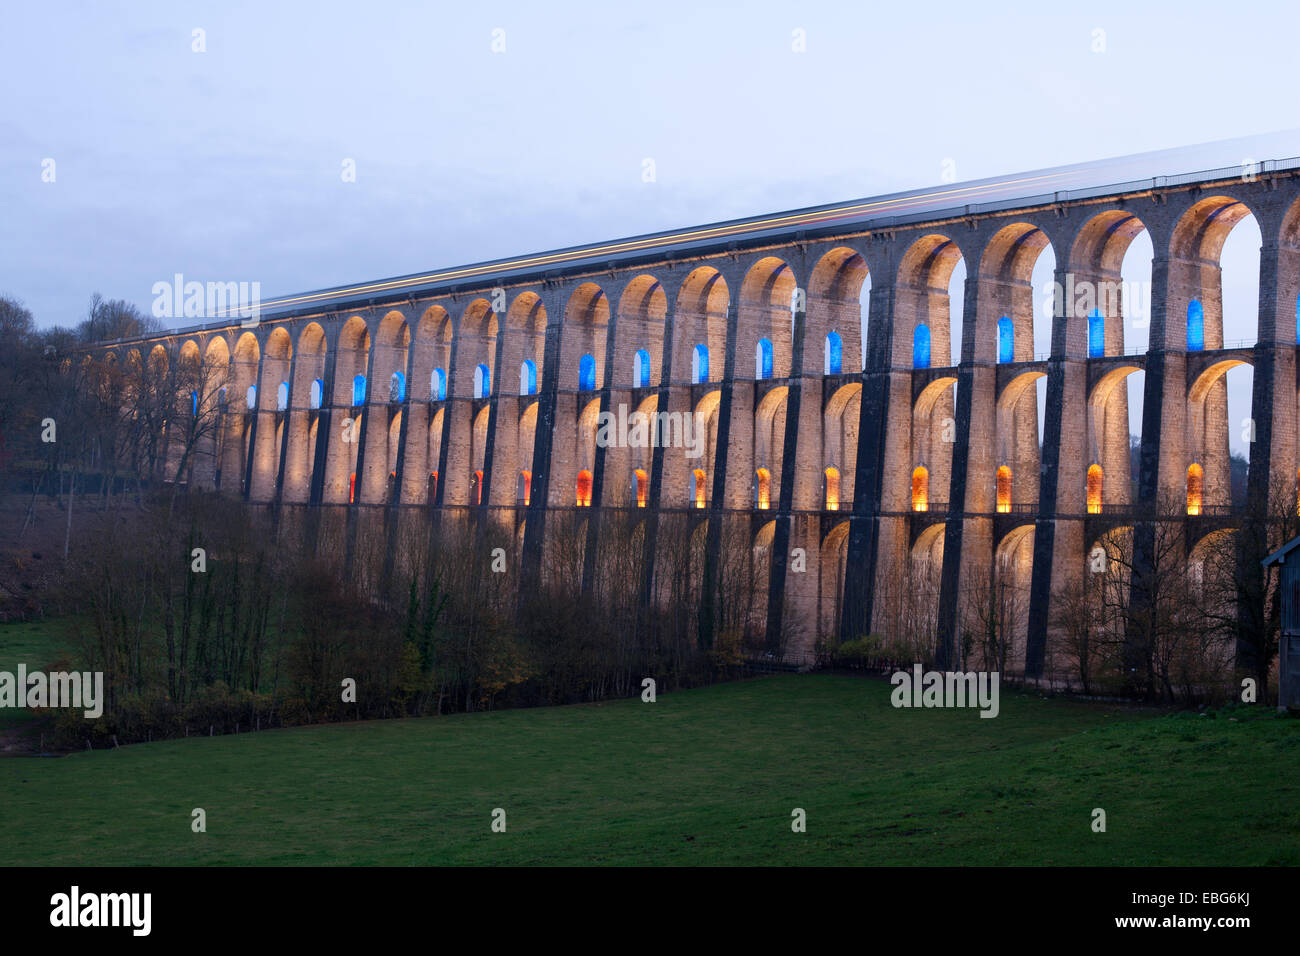 3-SECOND TIME EXPOSURE OF A TRAIN ON A VIADUCT. LED lights illuminate the 2nd & 3r floor. Chaumont, Haute-Marne, - Stock Image